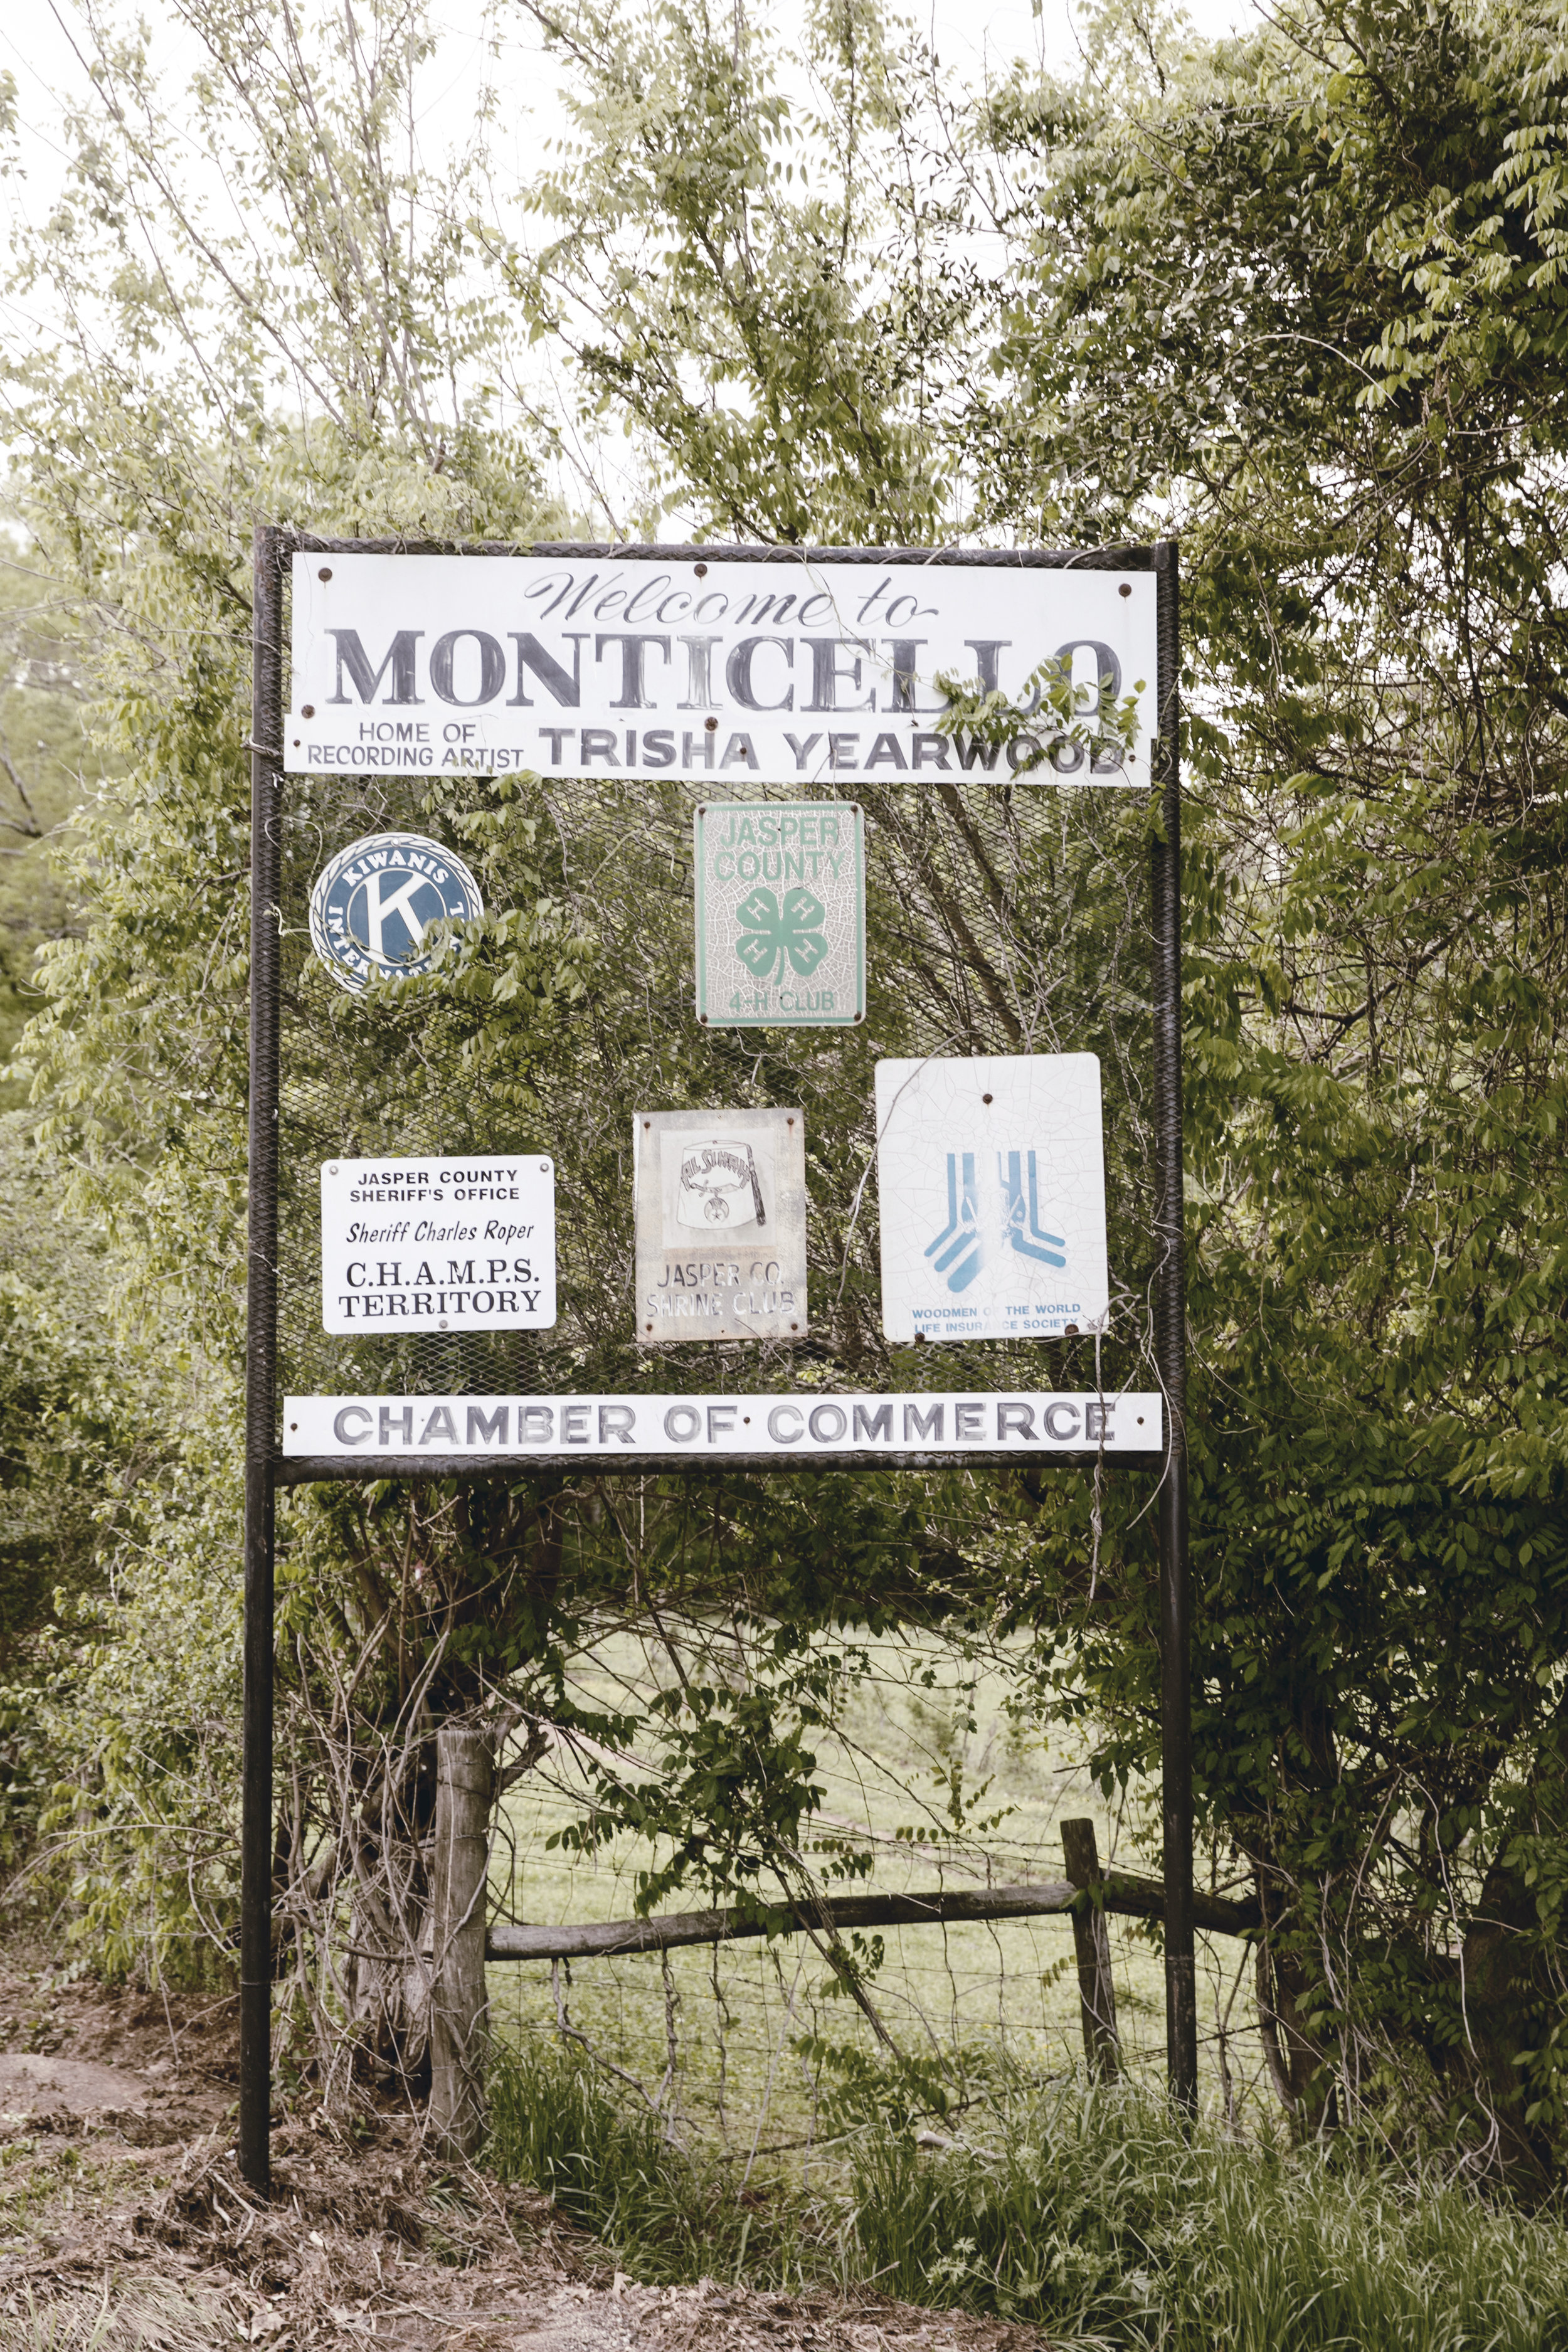 Monticello city limits sign / heirloomed